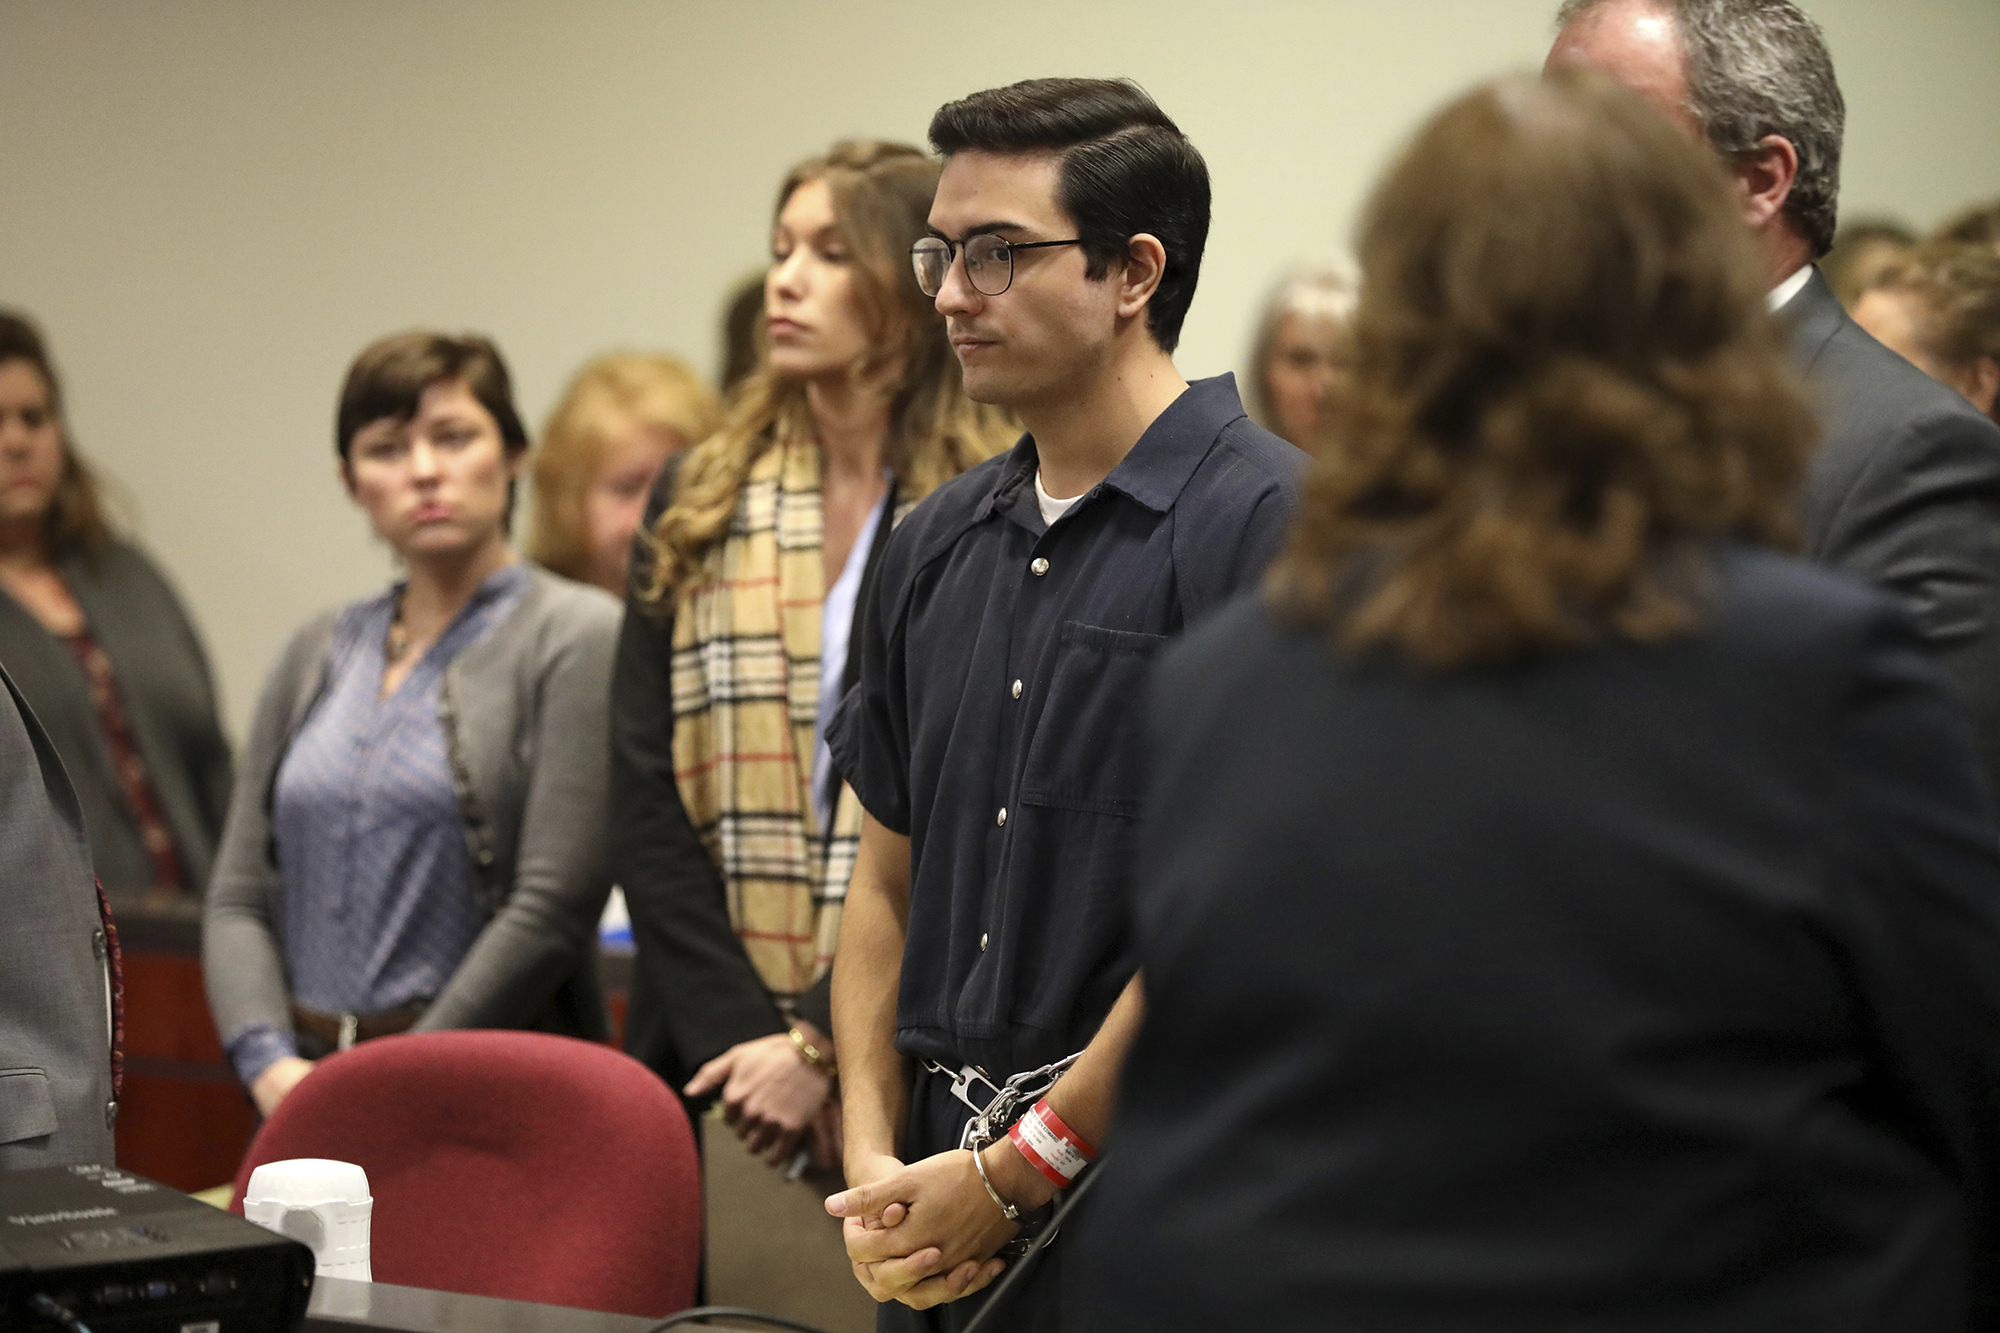 Steven Jones was sentenced to a six year prison term Tuesday afternoon February 11 2020 in Flagstaff, Ariz. after taking a plea deal on one count of manslaughter and three counts of aggravated assault stemming from an October 2015 shooting on the Northern